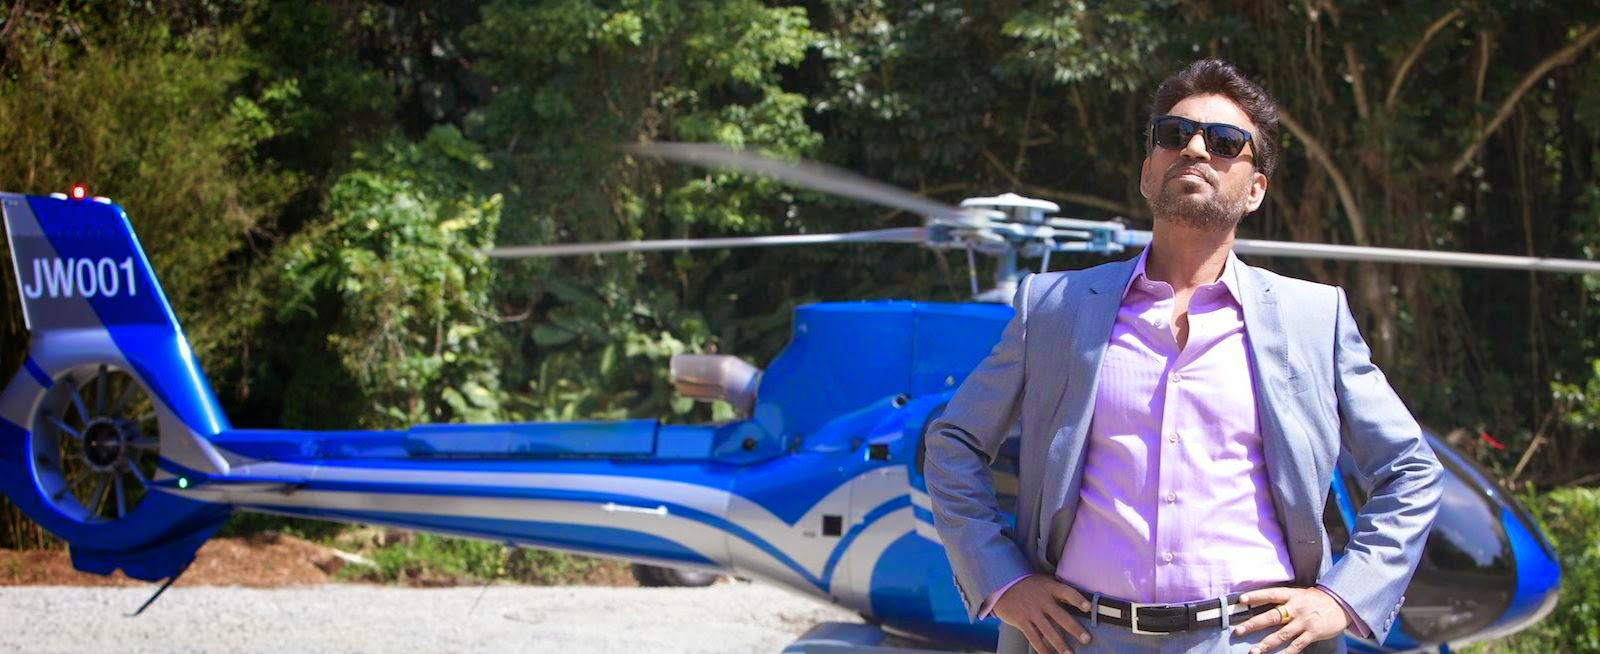 irrfan khan helicopter